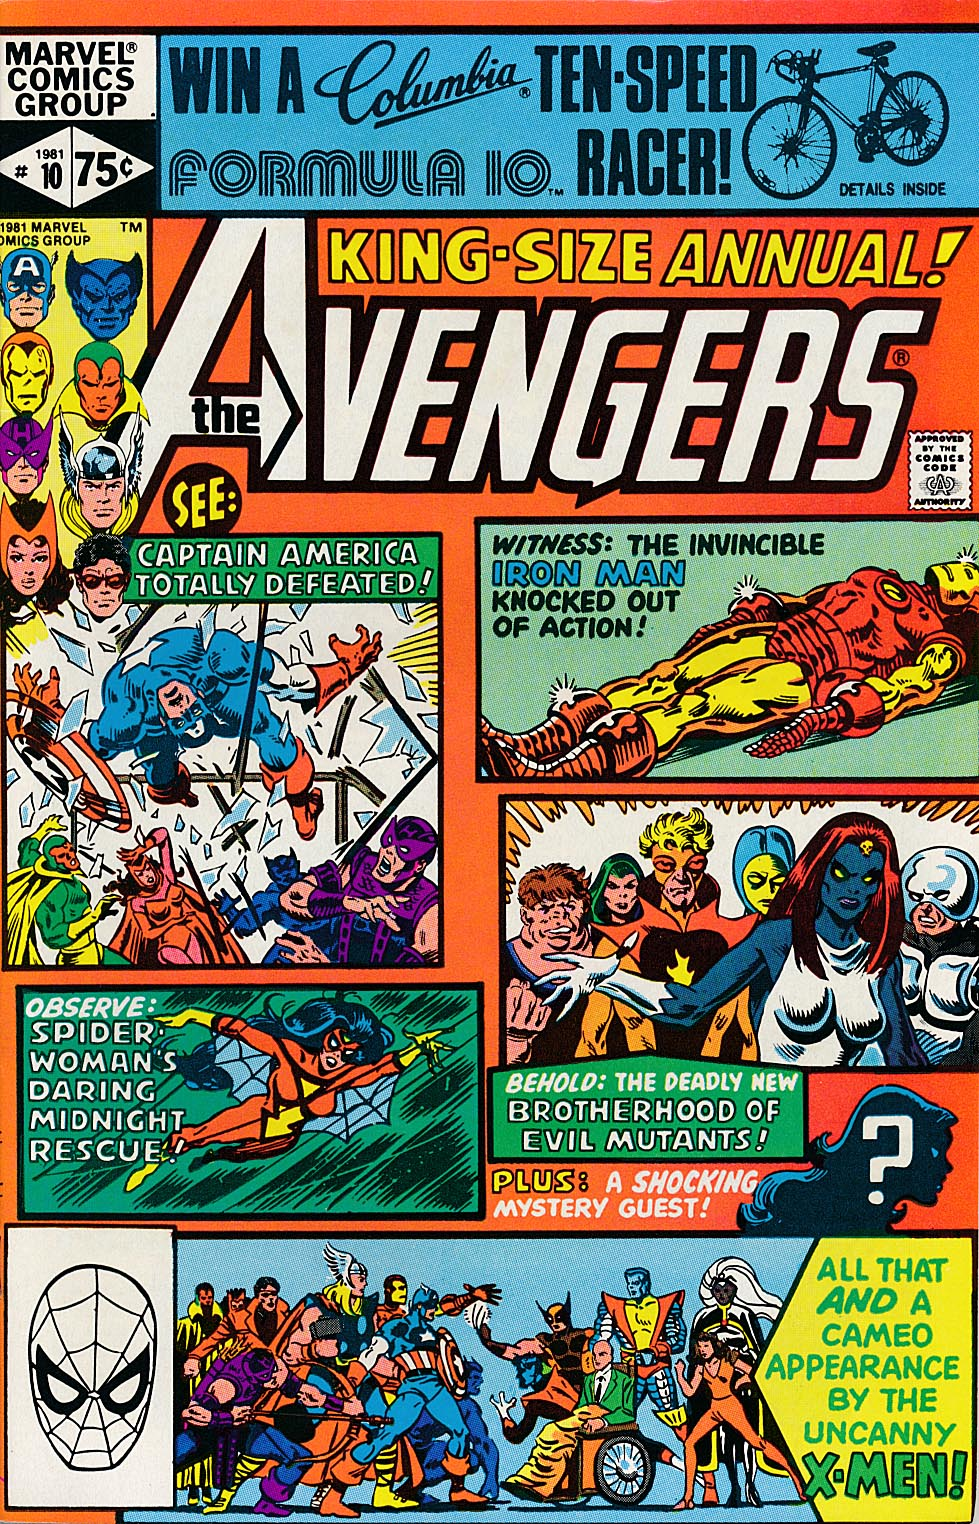 Avengers King-Size Annual 10 -NM